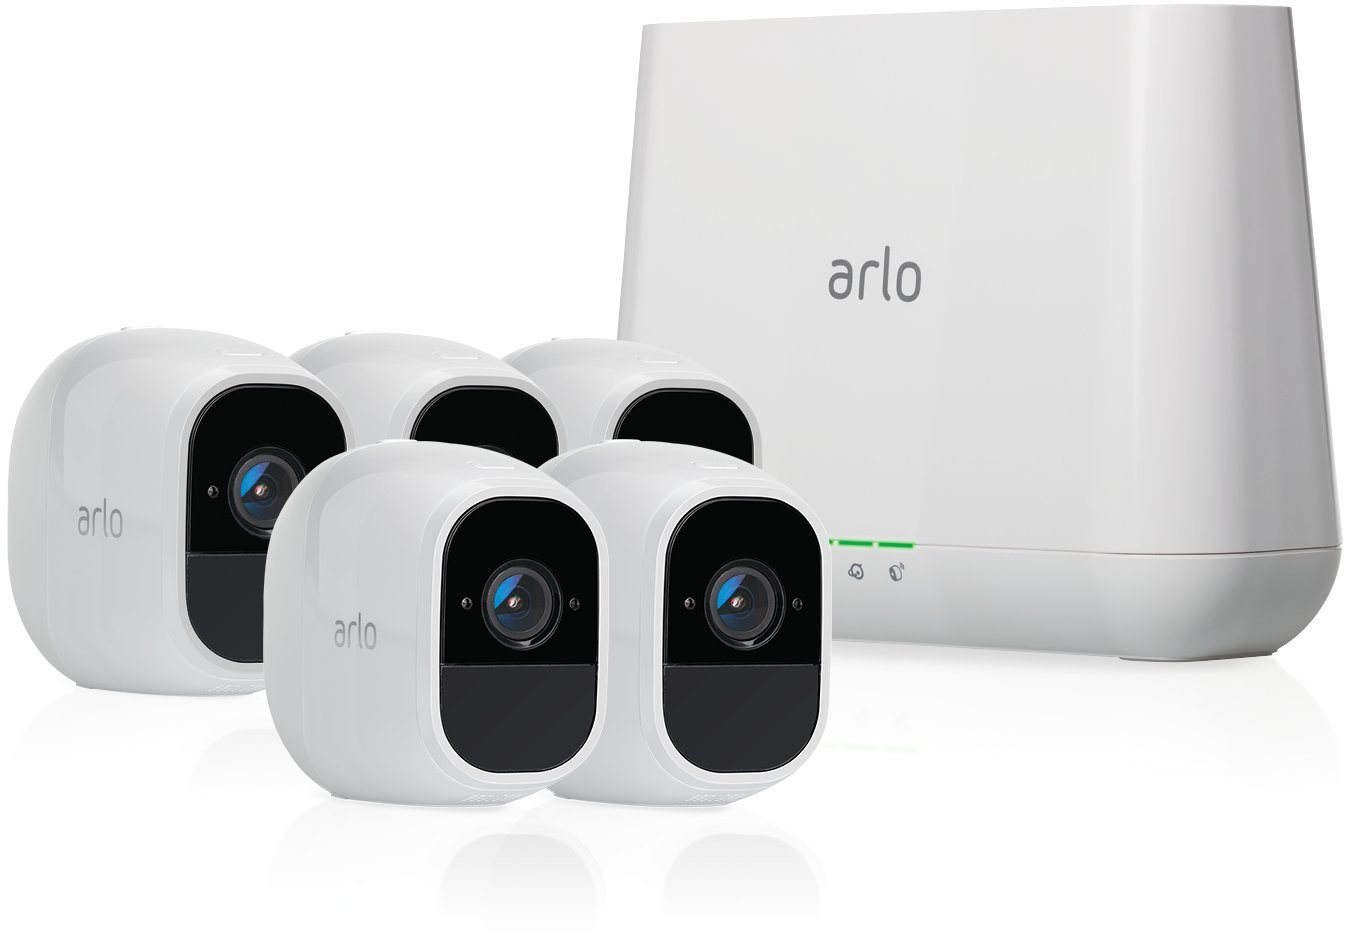 Arlo Pro 2 - Wireless Home Security Camera System with Siren | Rechargeable, Night vision, Indoor/Outdoor, 1080p, 2-Way Audio, Wall Mount | Cloud Storage Included | 5 camera kit